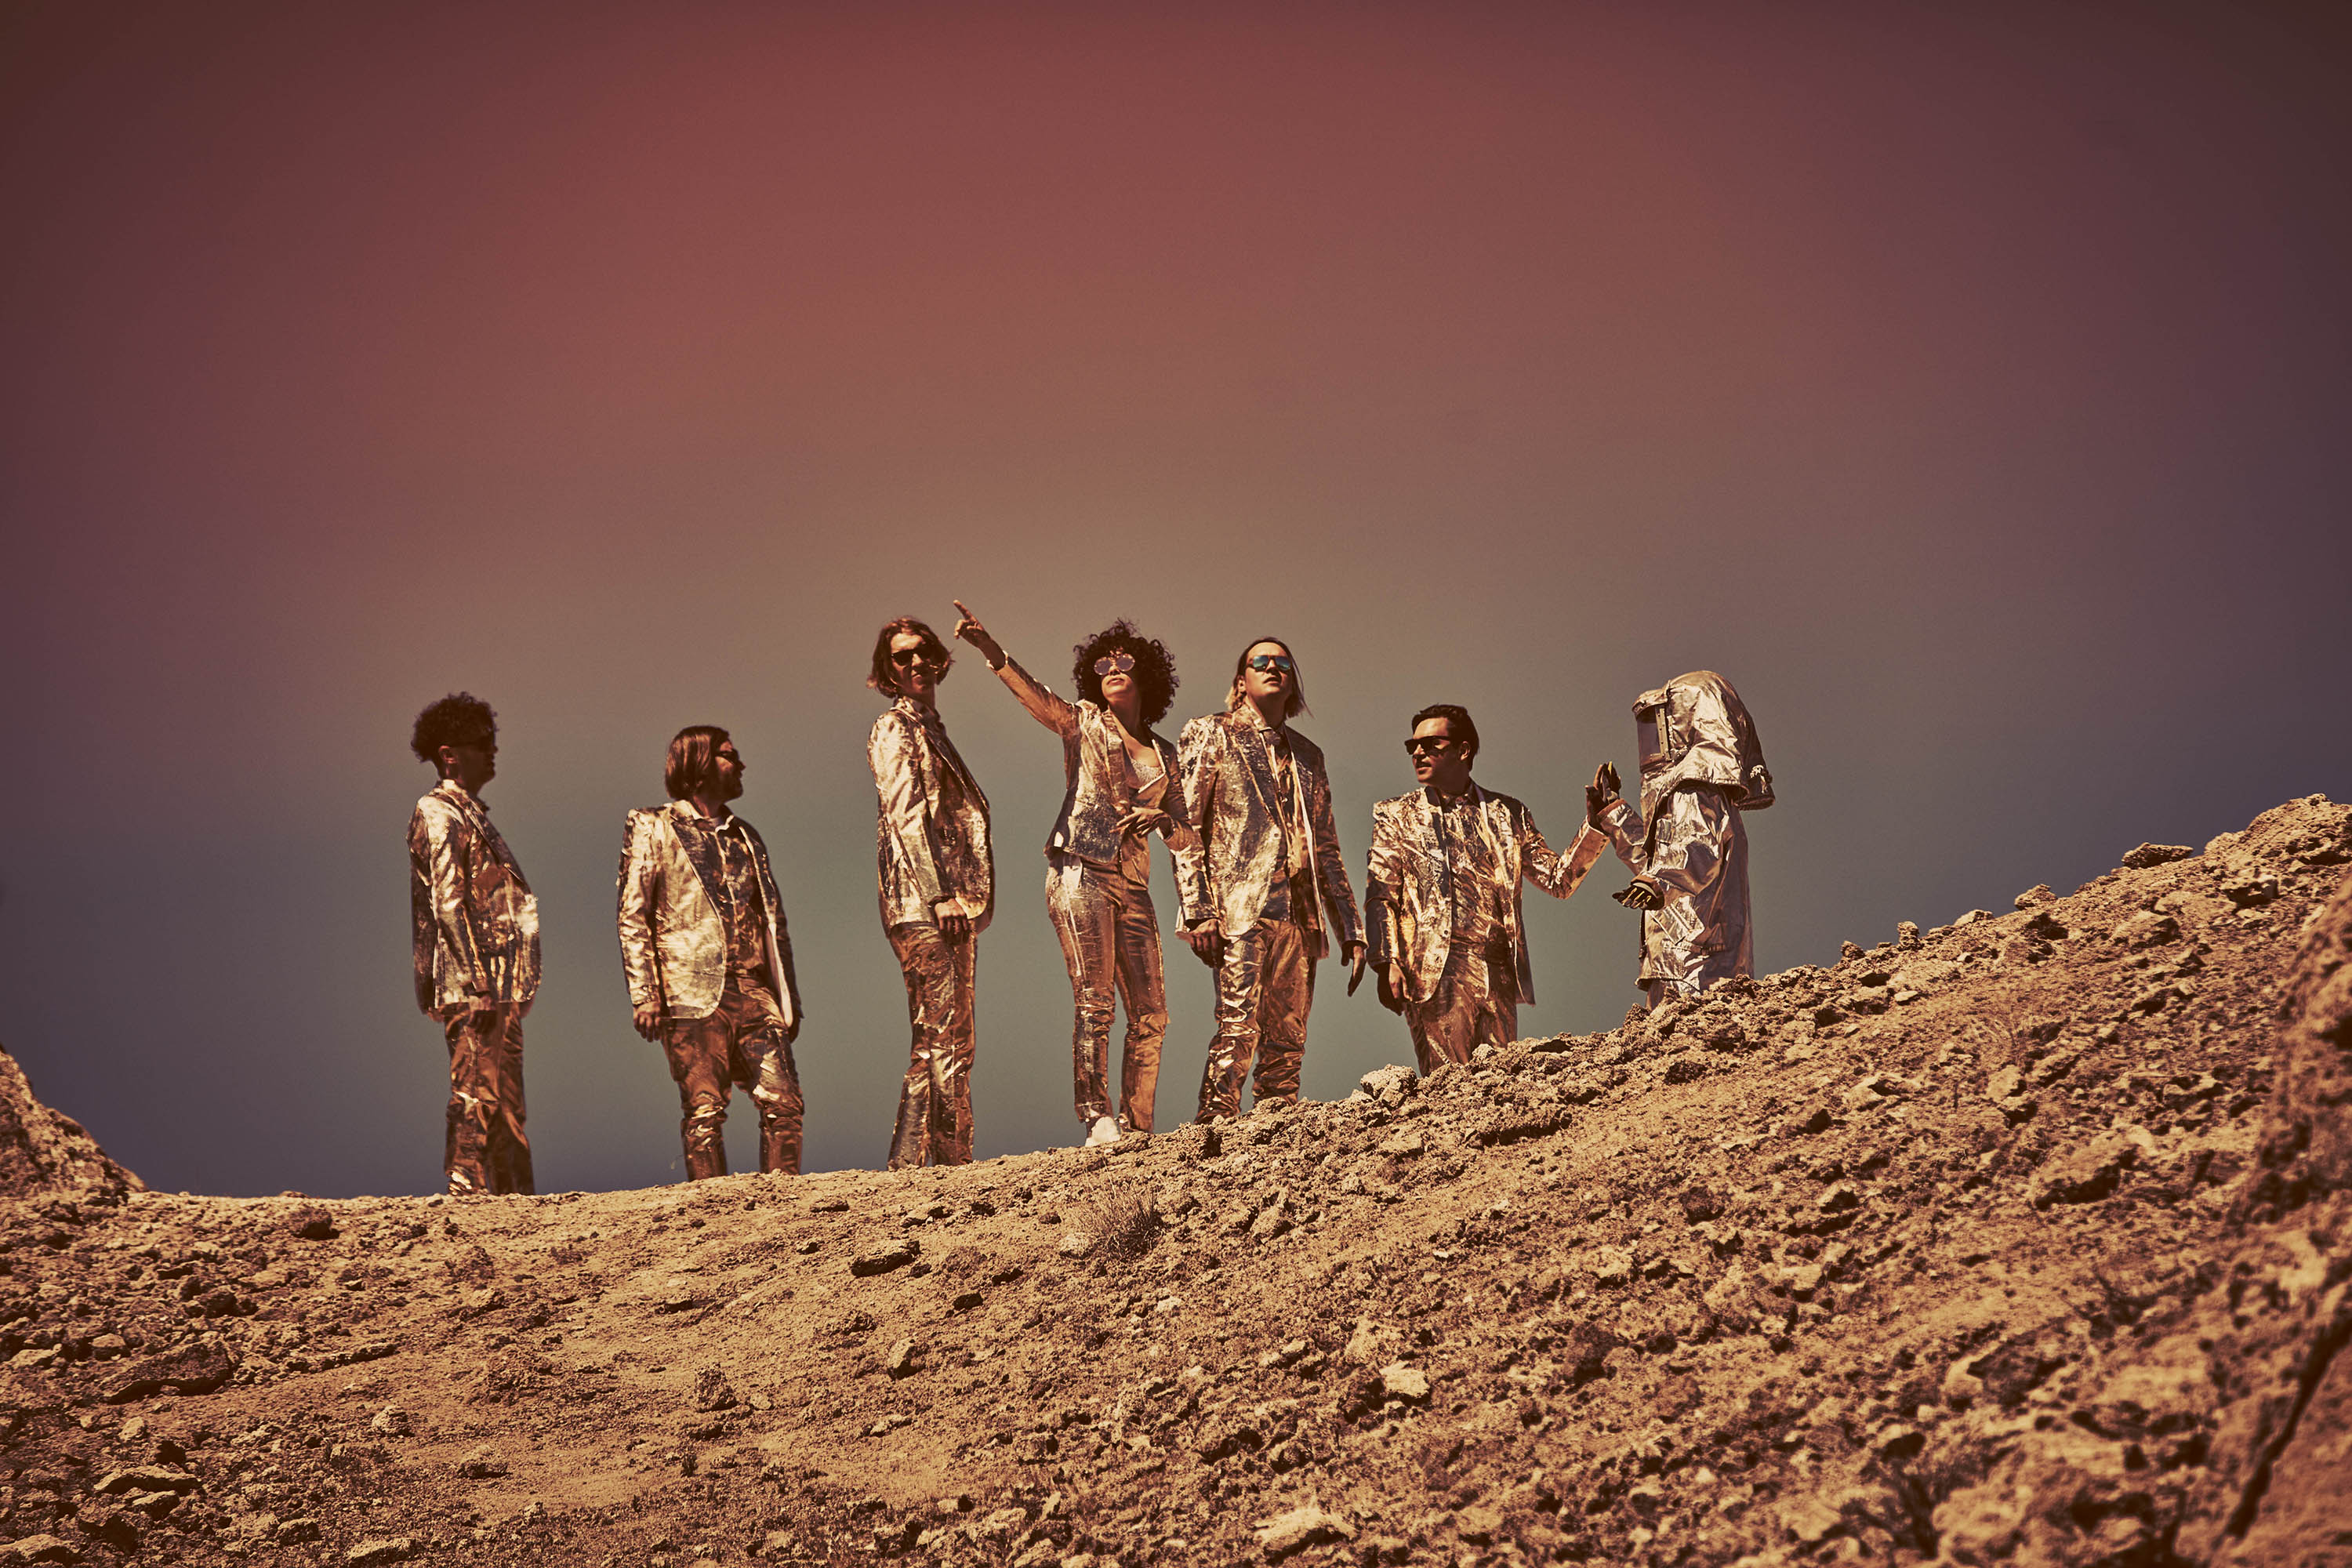 Tracks: Arcade Fire, Baby Queen, Larry Pink the Human ft Joe Talbot and more